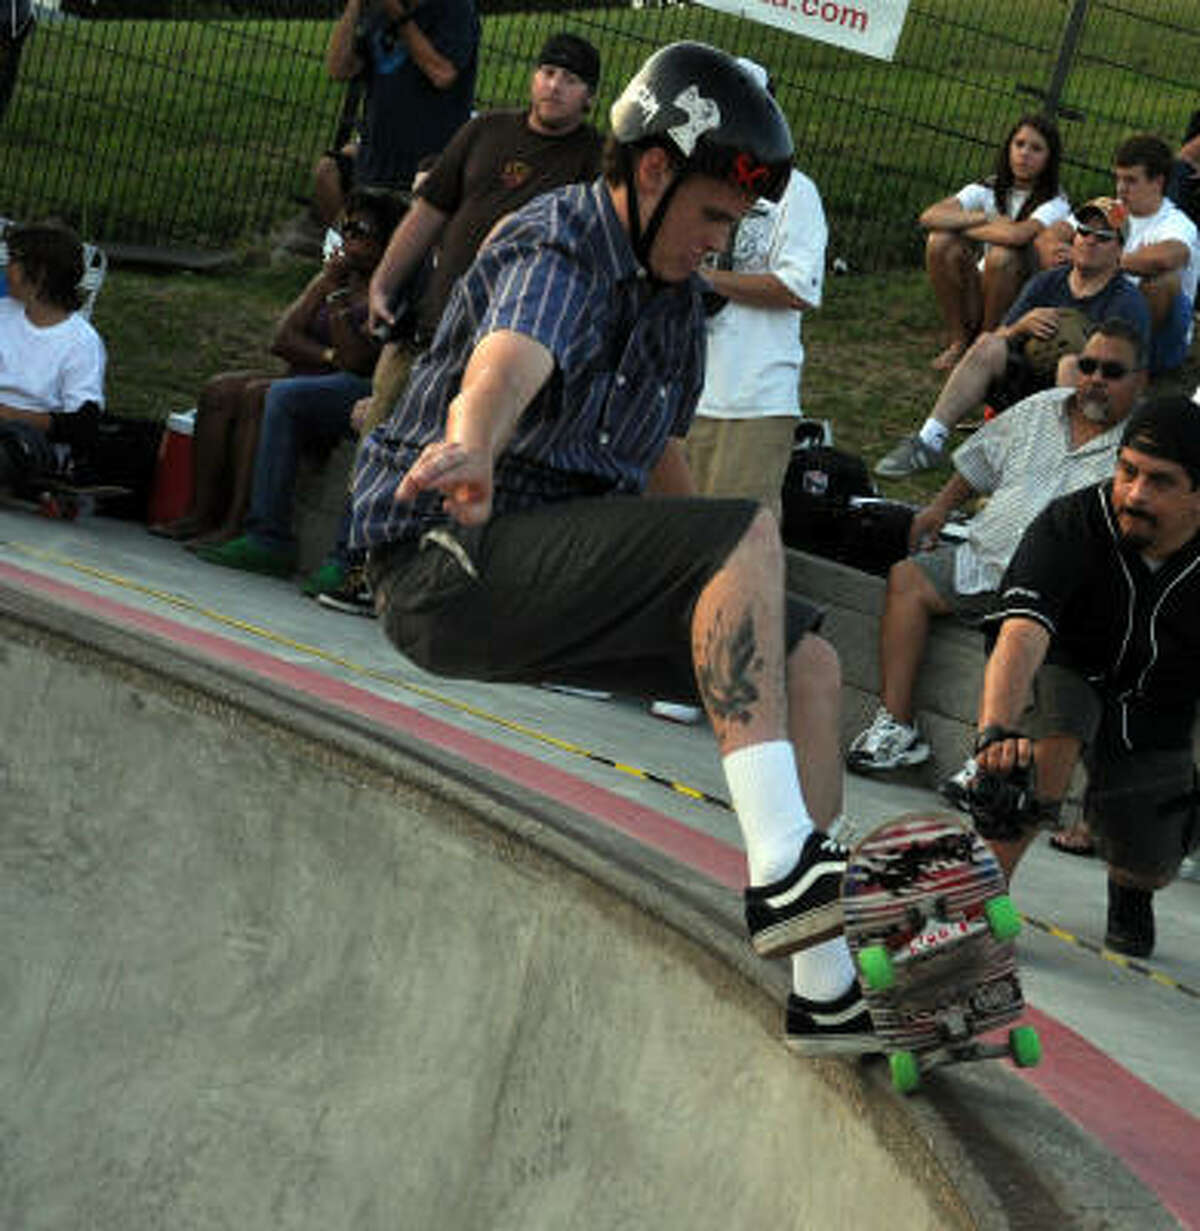 Connor O'Leary grinds on the lip of the kidney bowl.